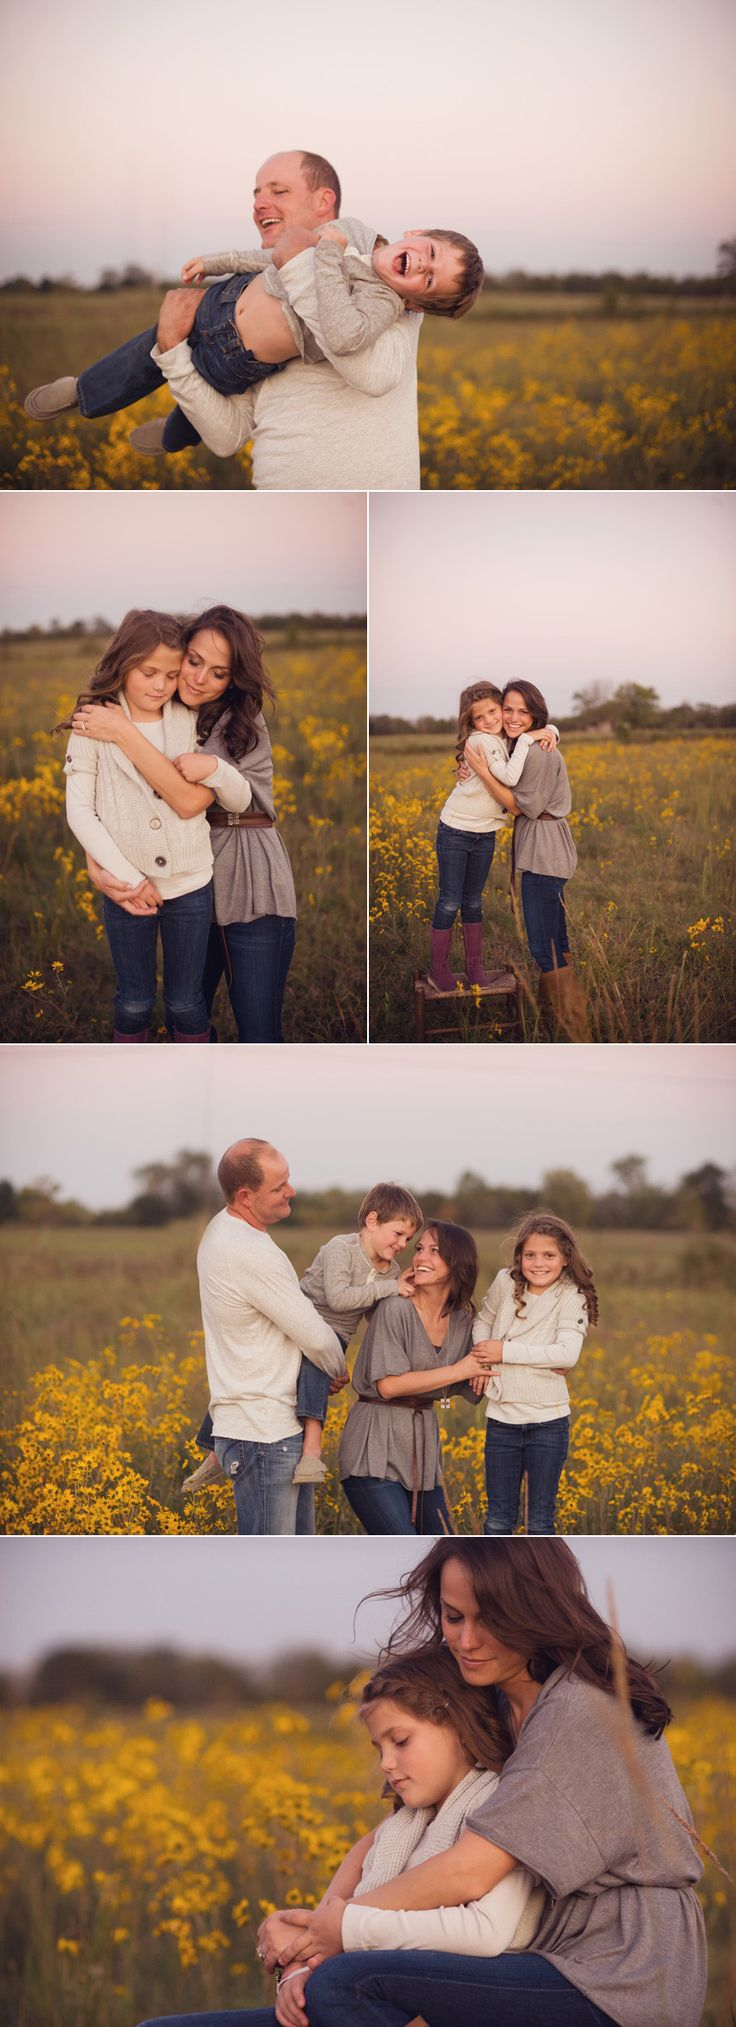 Beautiful outdoor family shoot. Love how you can feel the closeness.